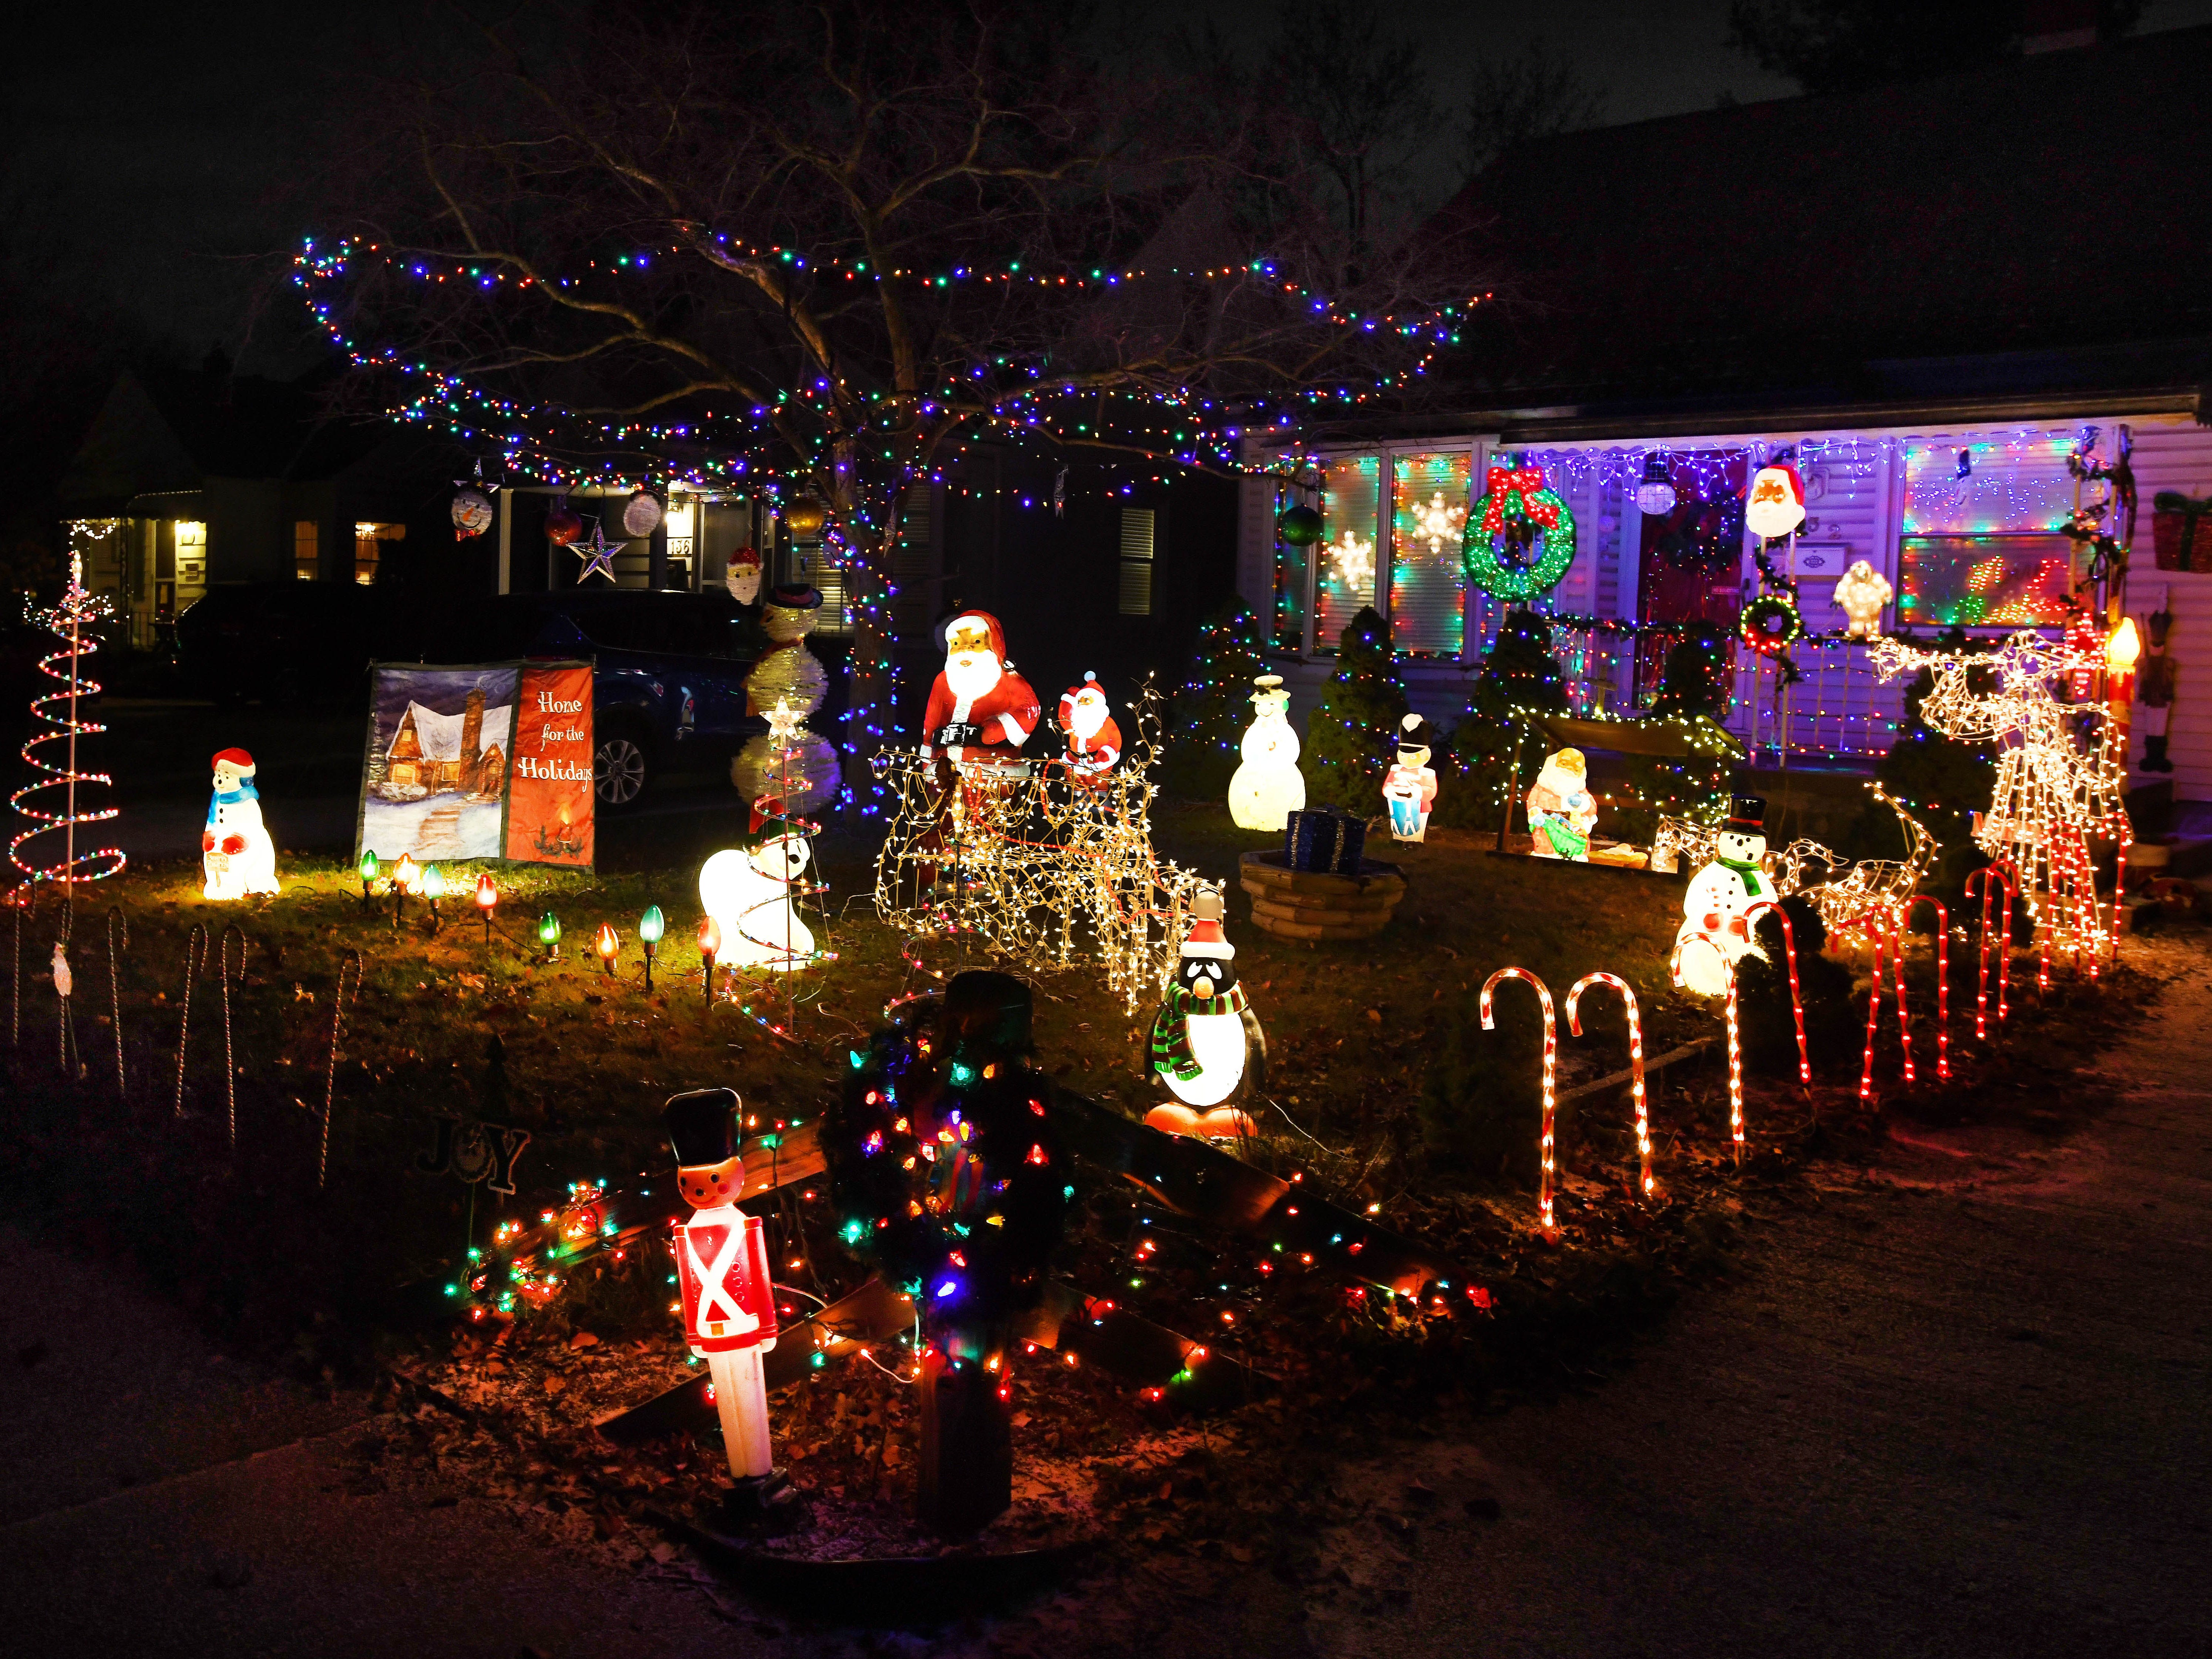 Filling the front yard of a home on DeVillen street, Christmas spirit is in full force in Royal Oak.